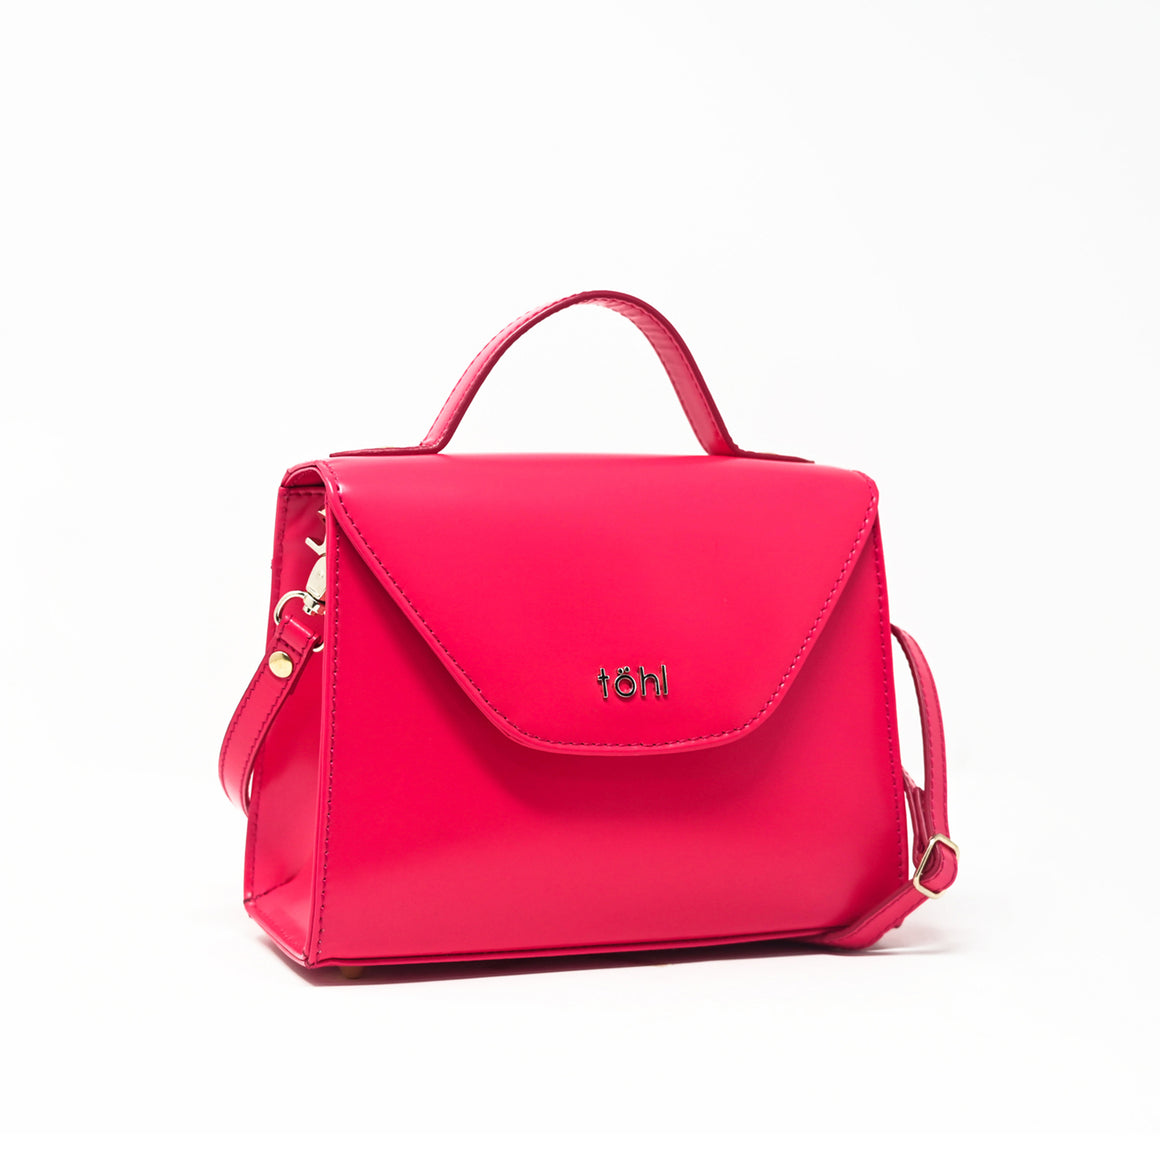 SG0032 - TOHL ABBEY WOMEN'S CROSS-BODY BAG - PINK